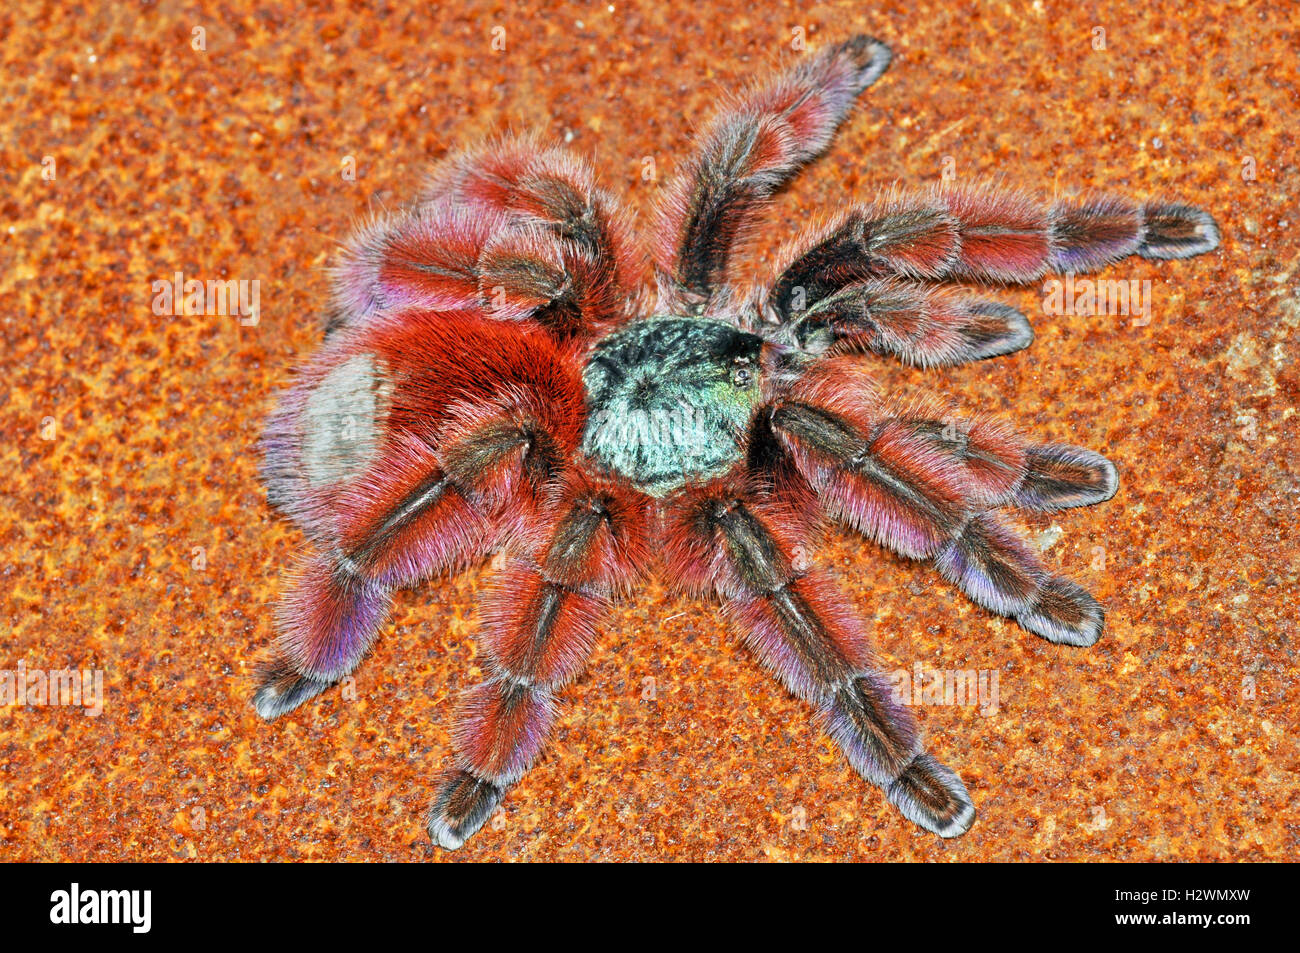 martinique pinktoe vogelspinne avicularia versicolor weiblich stockfoto bild 122267121 alamy. Black Bedroom Furniture Sets. Home Design Ideas